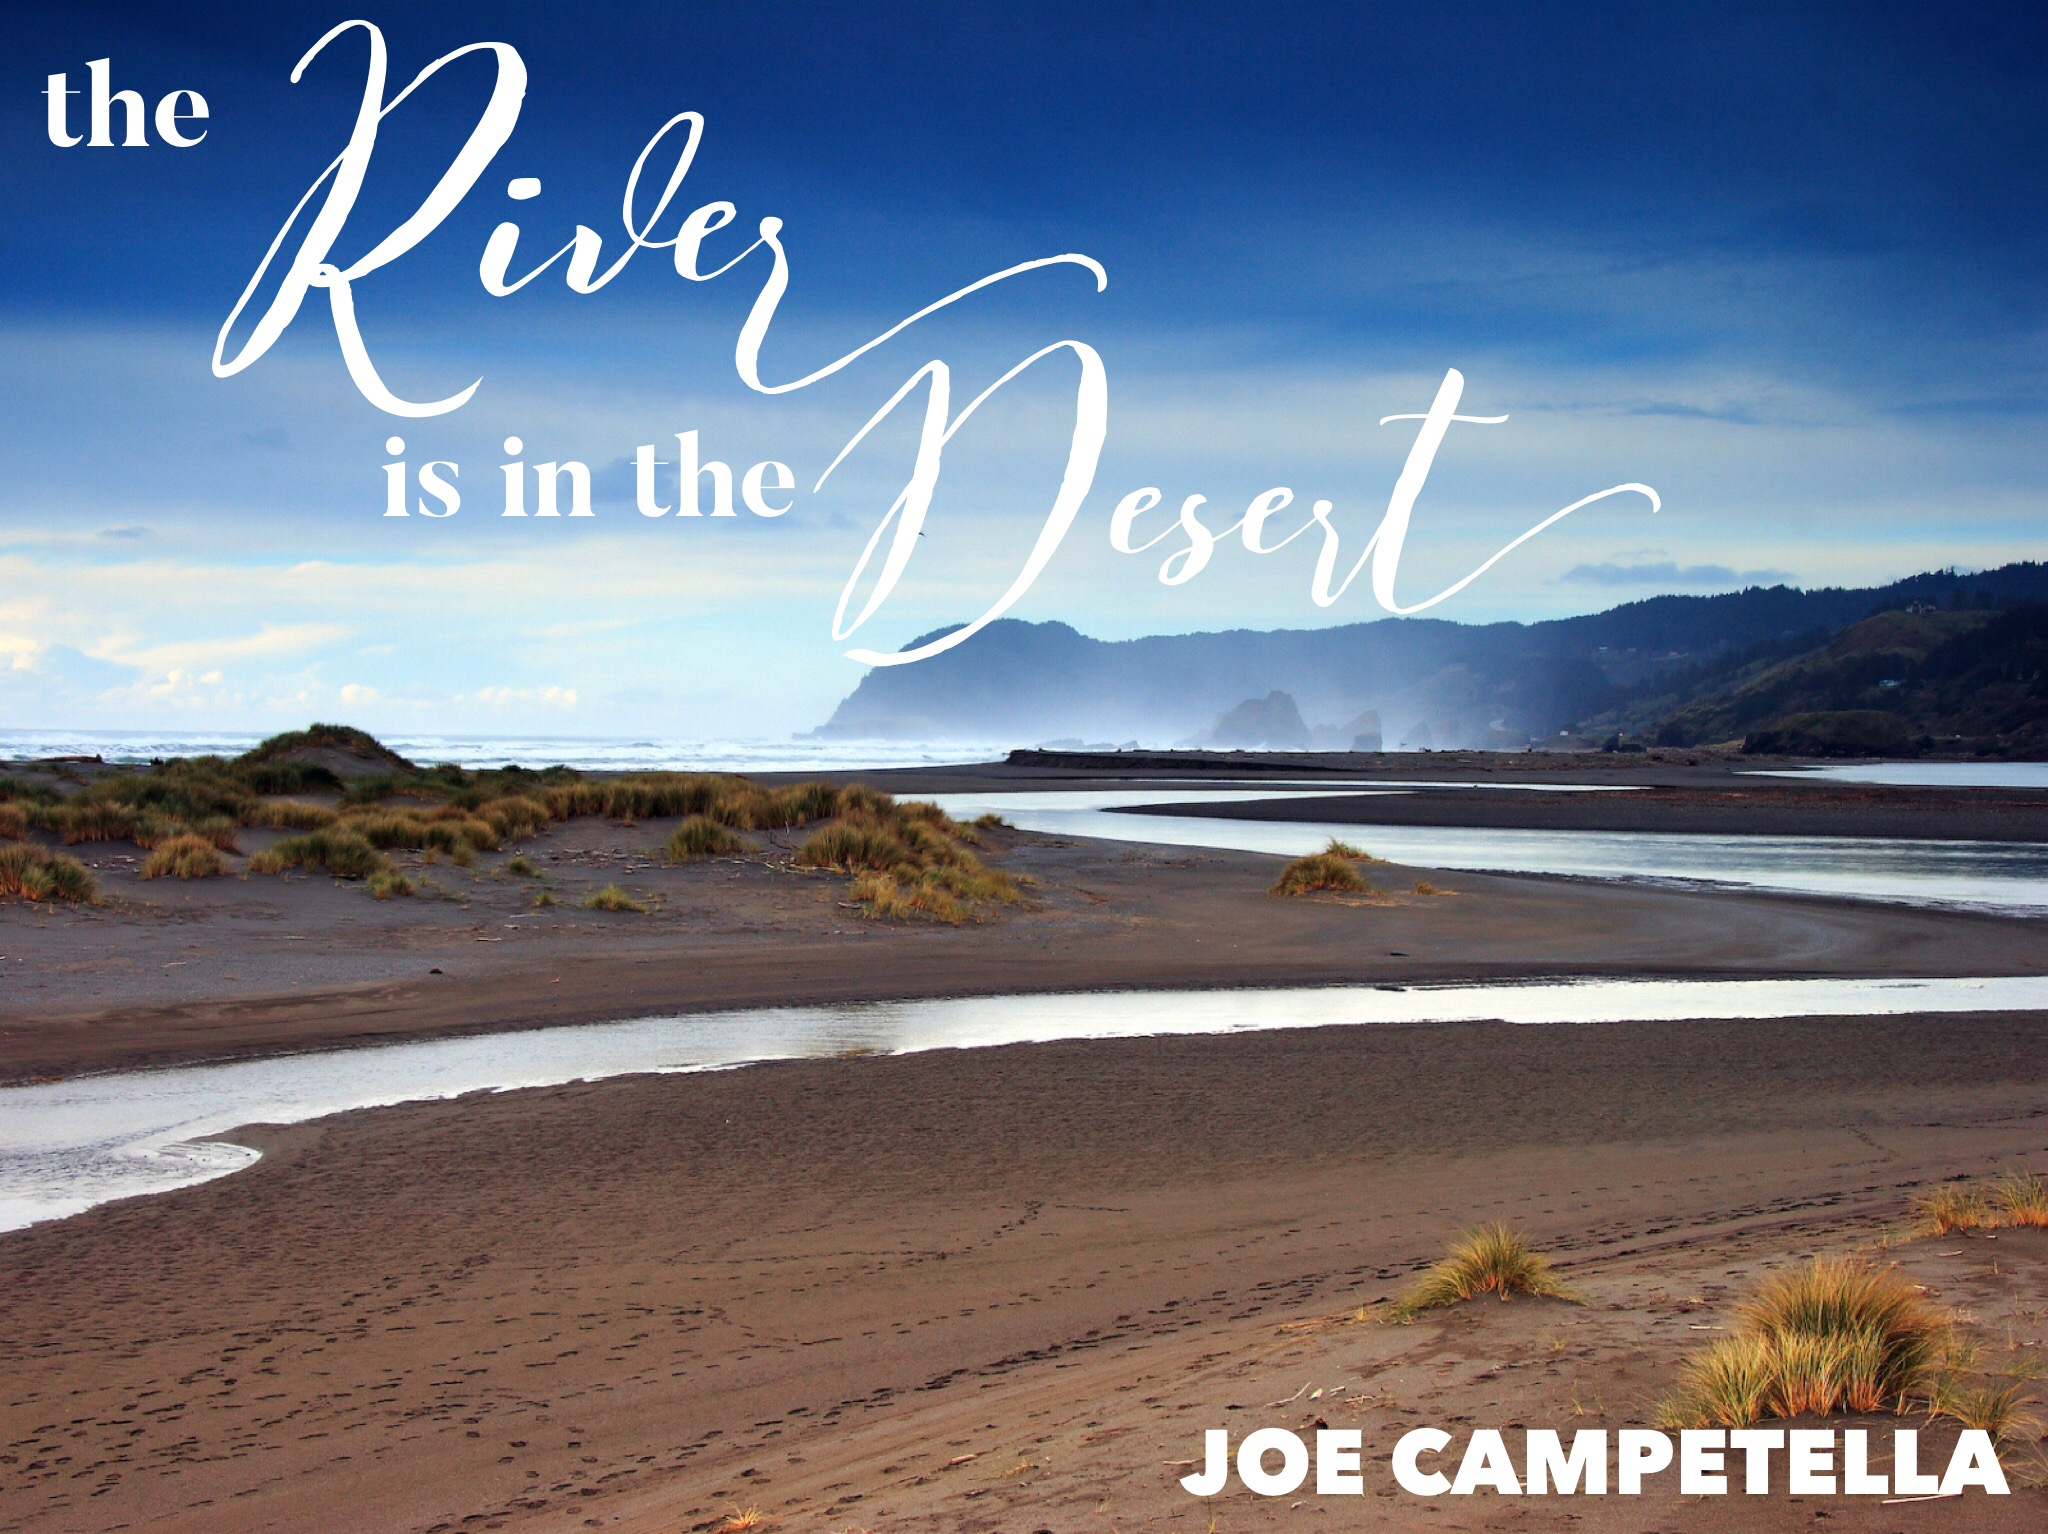 The River Runs Through the Desert